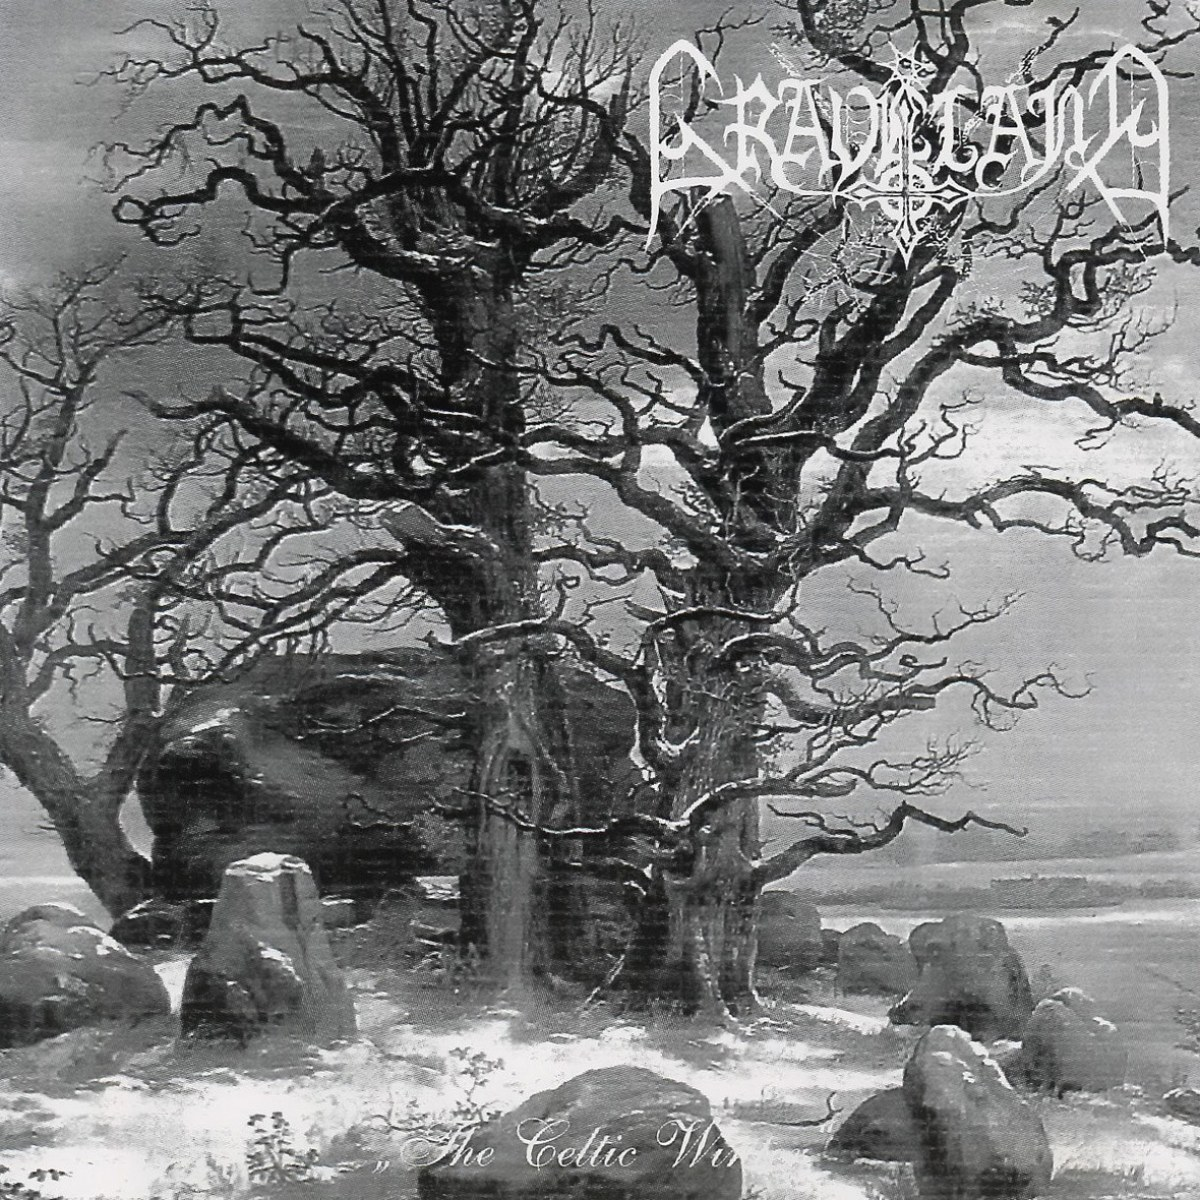 Review for Graveland - The Celtic Winter